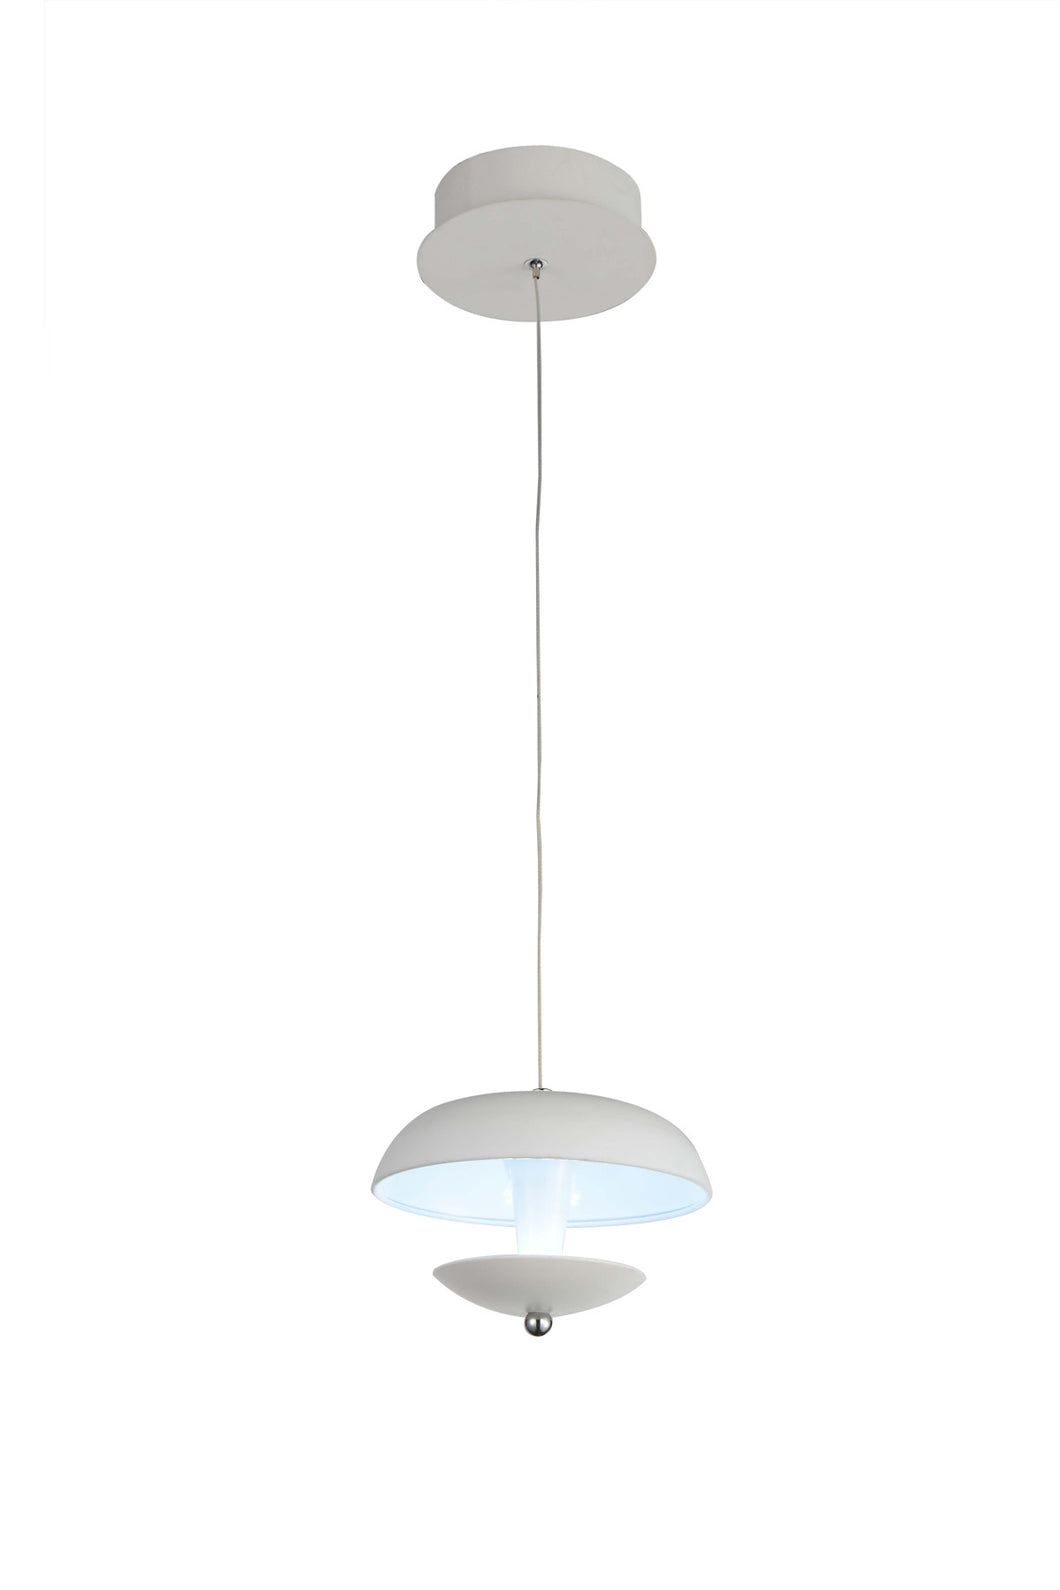 LED Down Mini Pendant with White finish